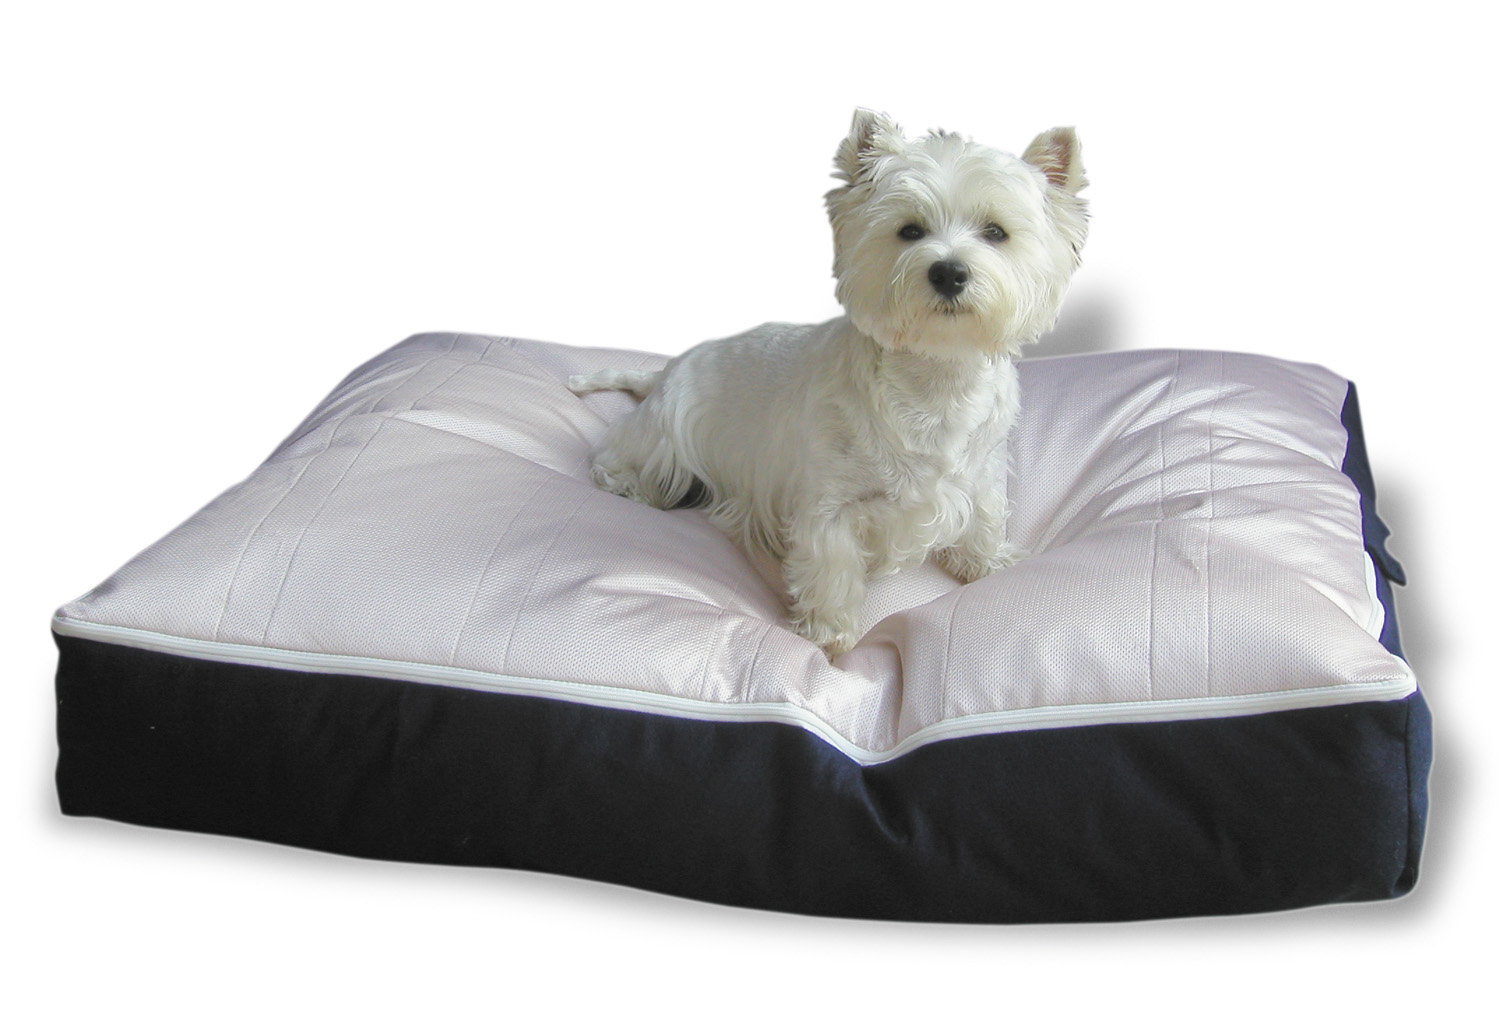 PoochPads Absorbent & Odor Resistent Dog Beds